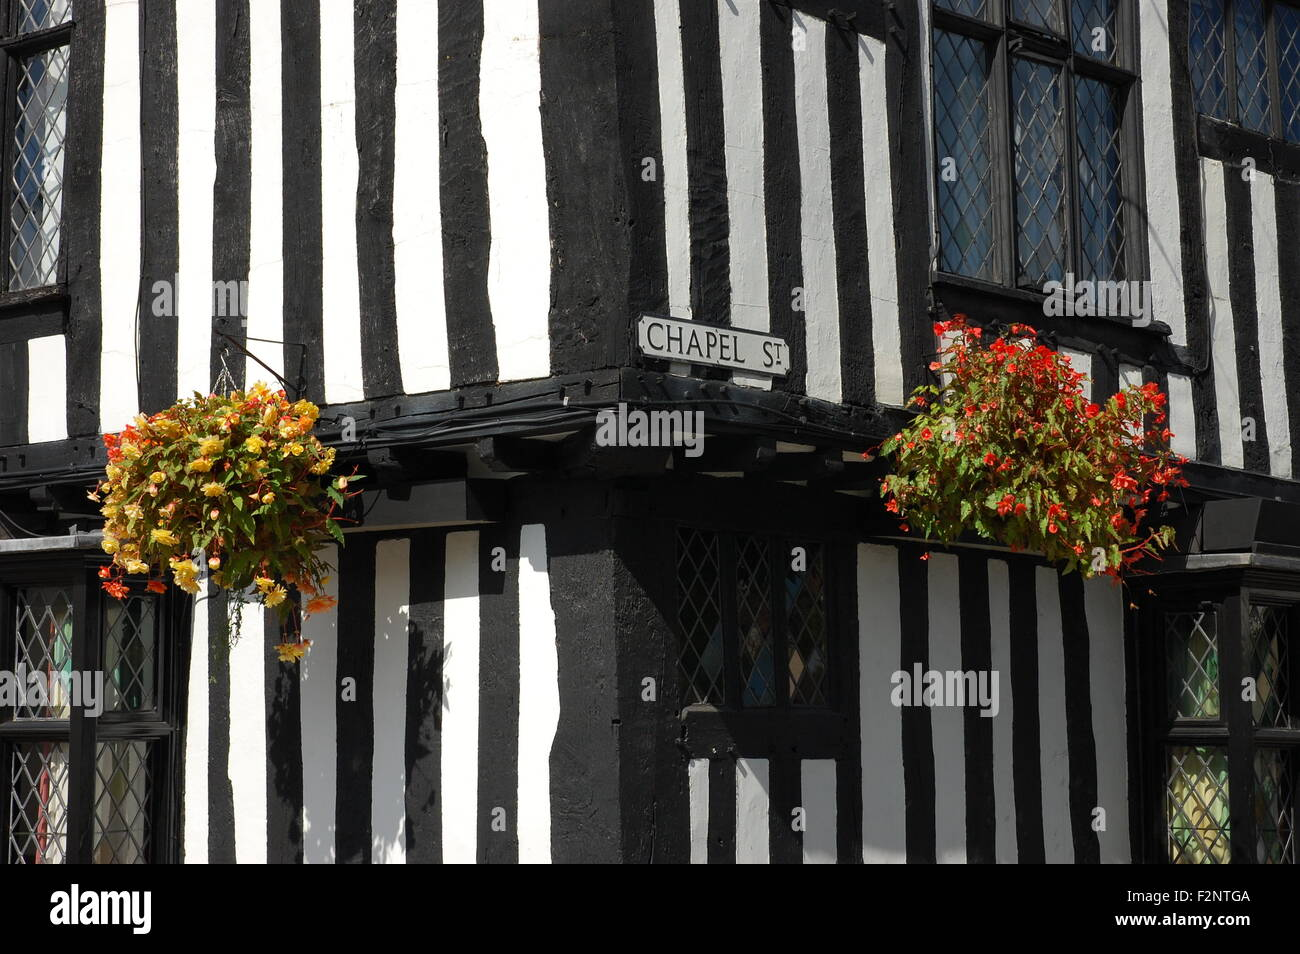 Tudor half-timber walls of the Falcon Hotel in Stratford-upon-Avon, England - Stock Image